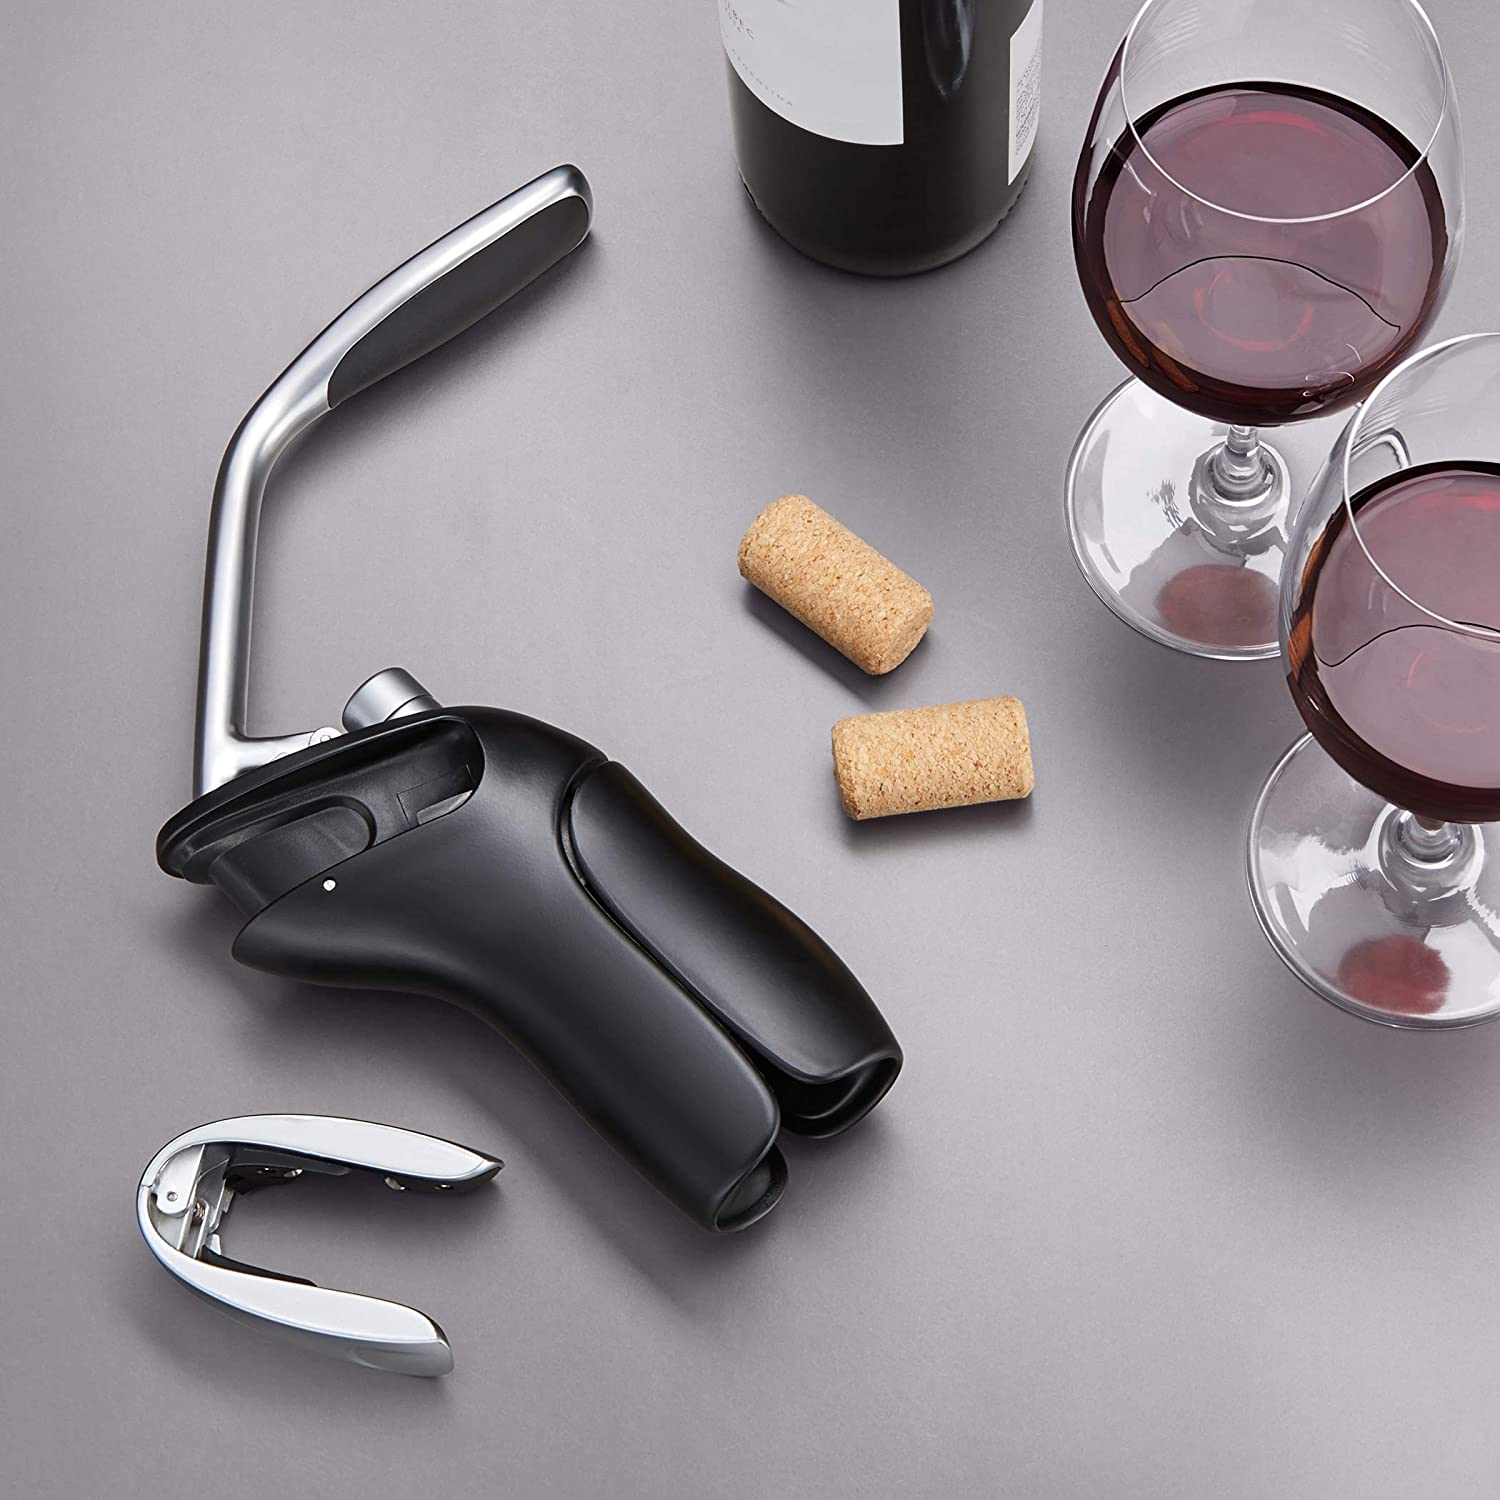 Mintiml Vertical Lever Corkscrew